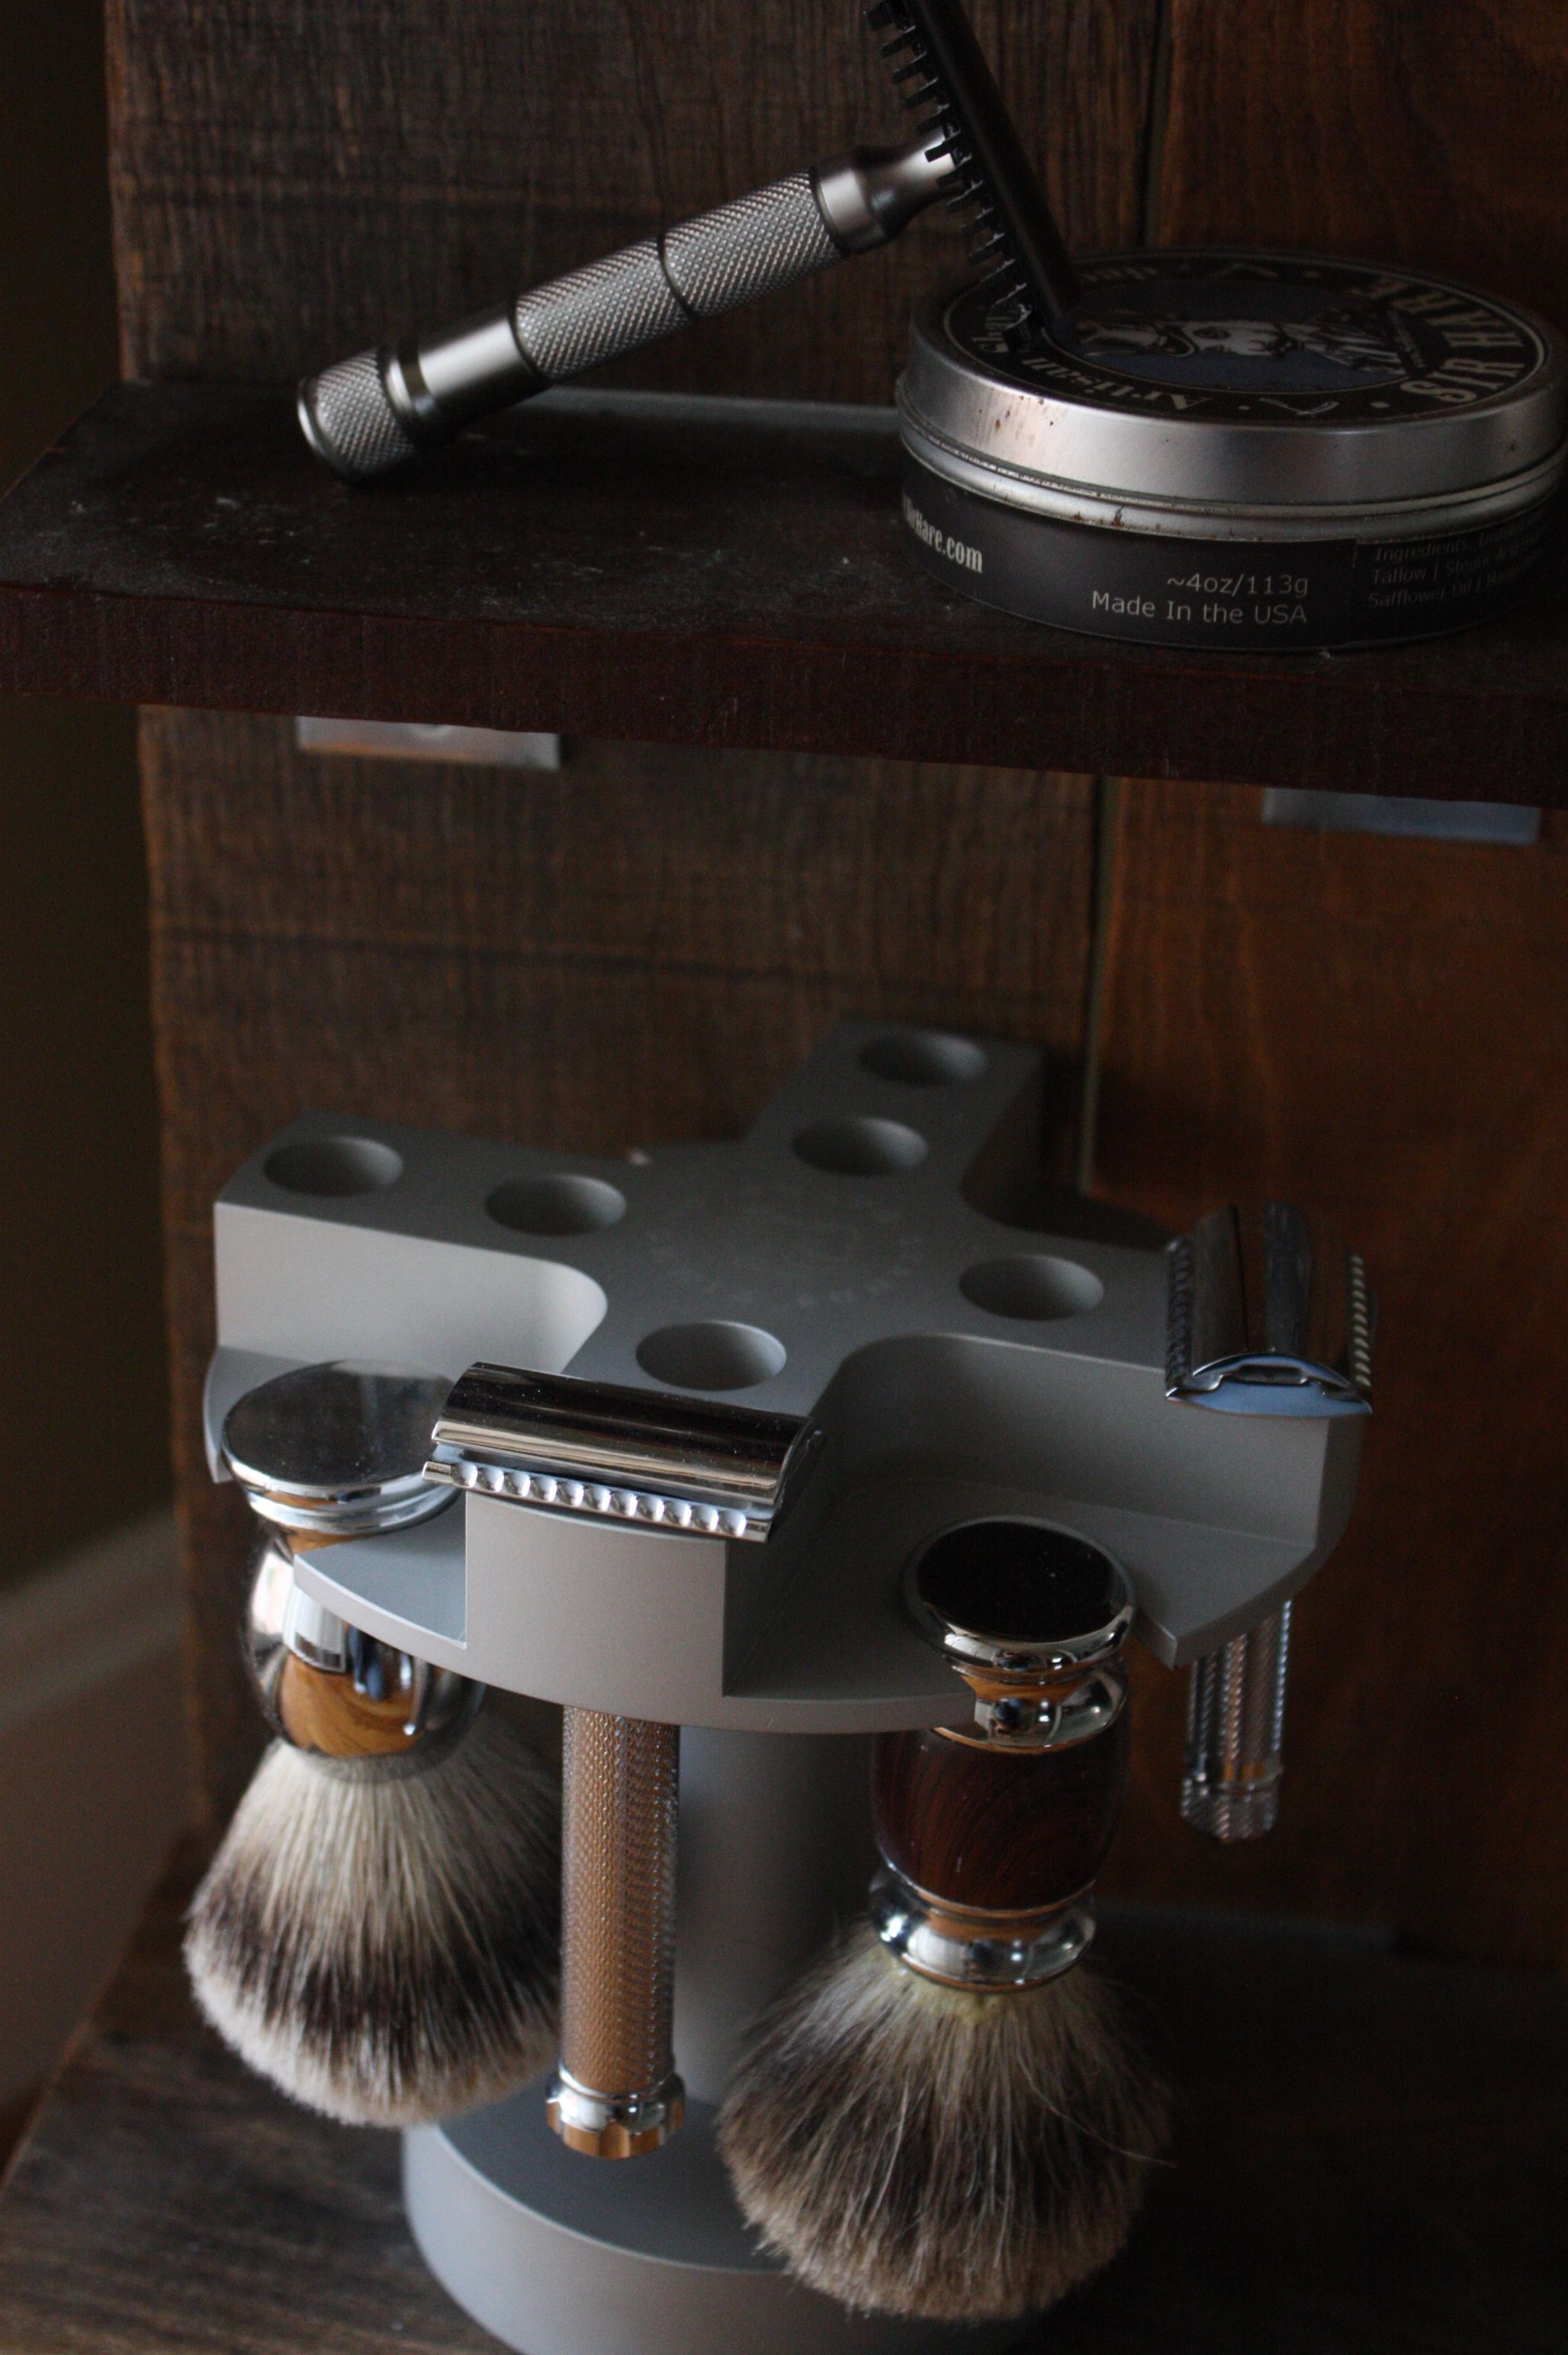 Best way to store multiple safety razors and shave brushes